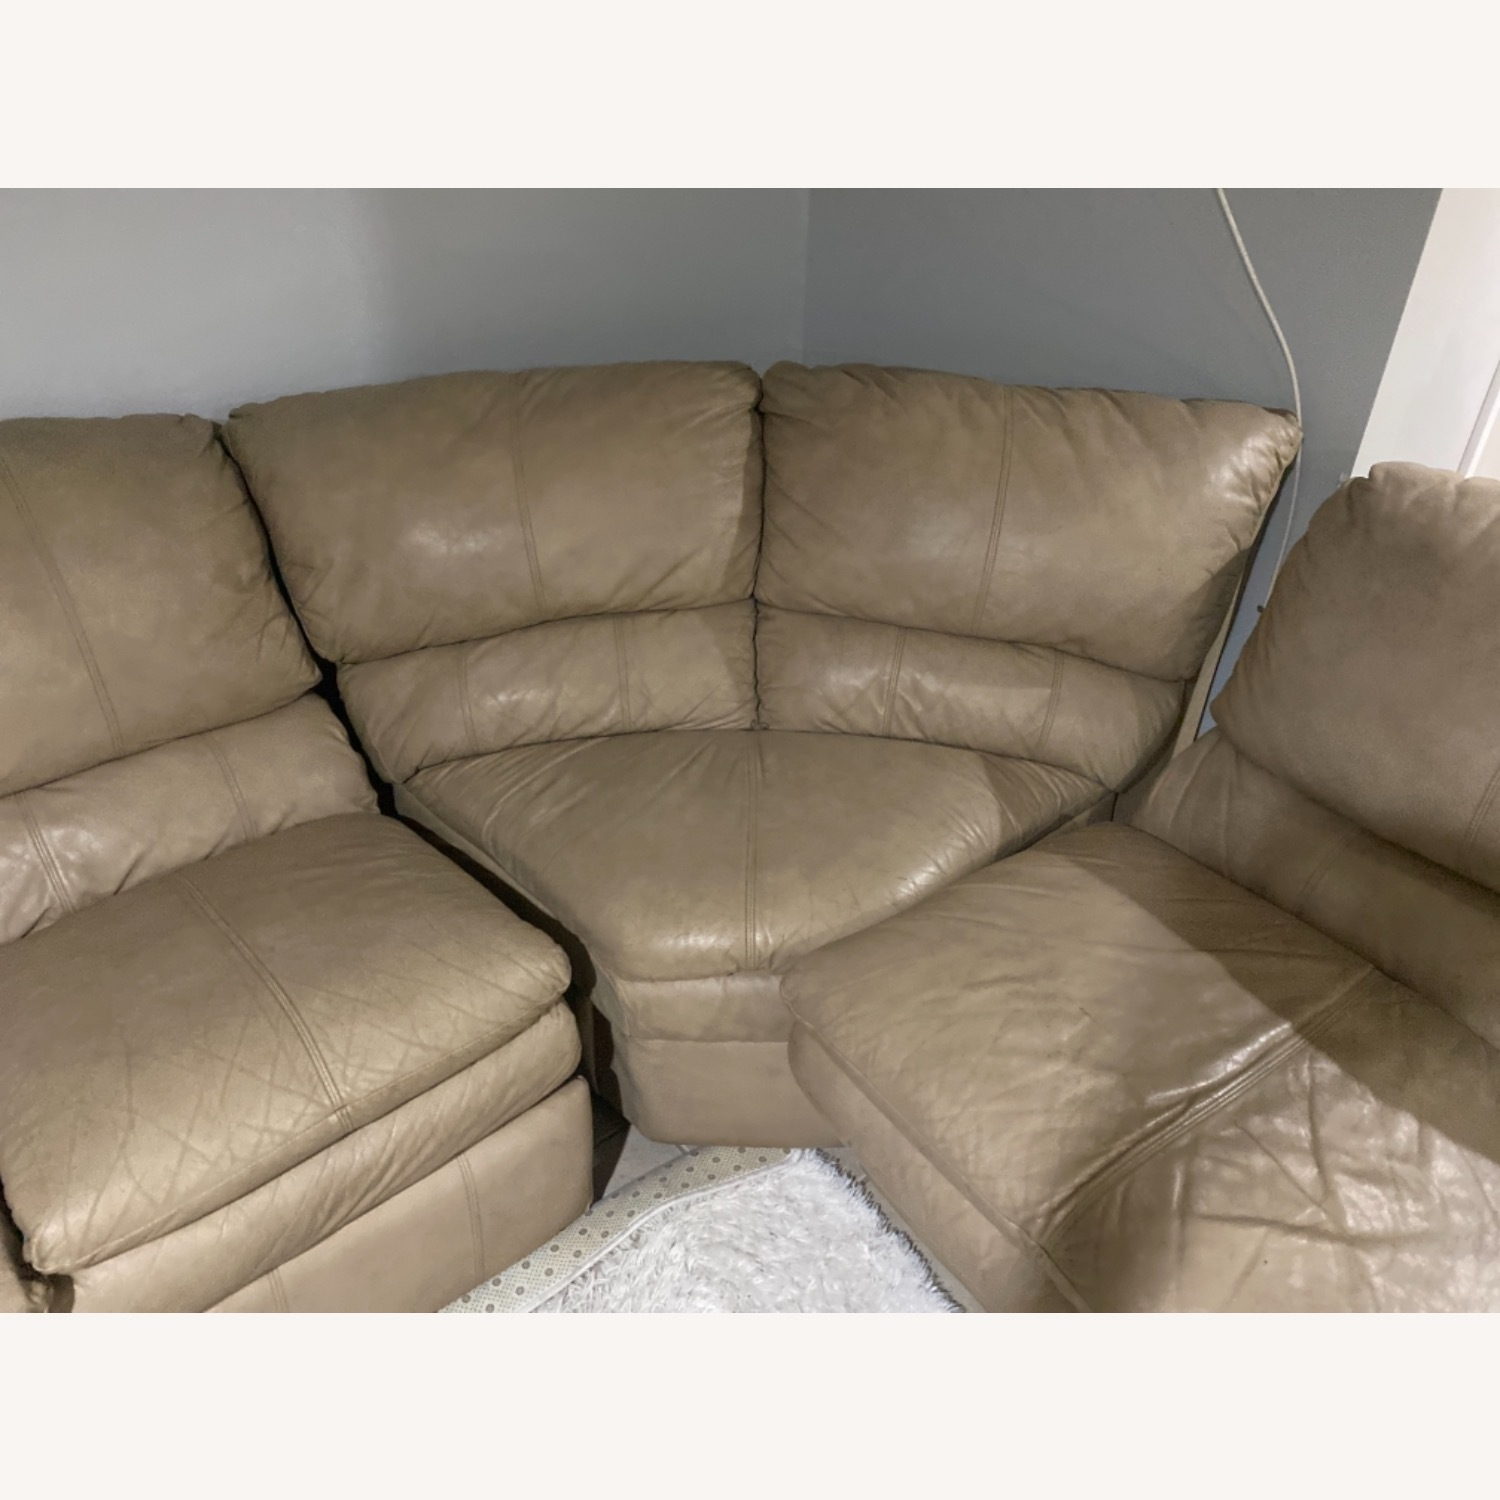 Leather Beige Couch - image-3